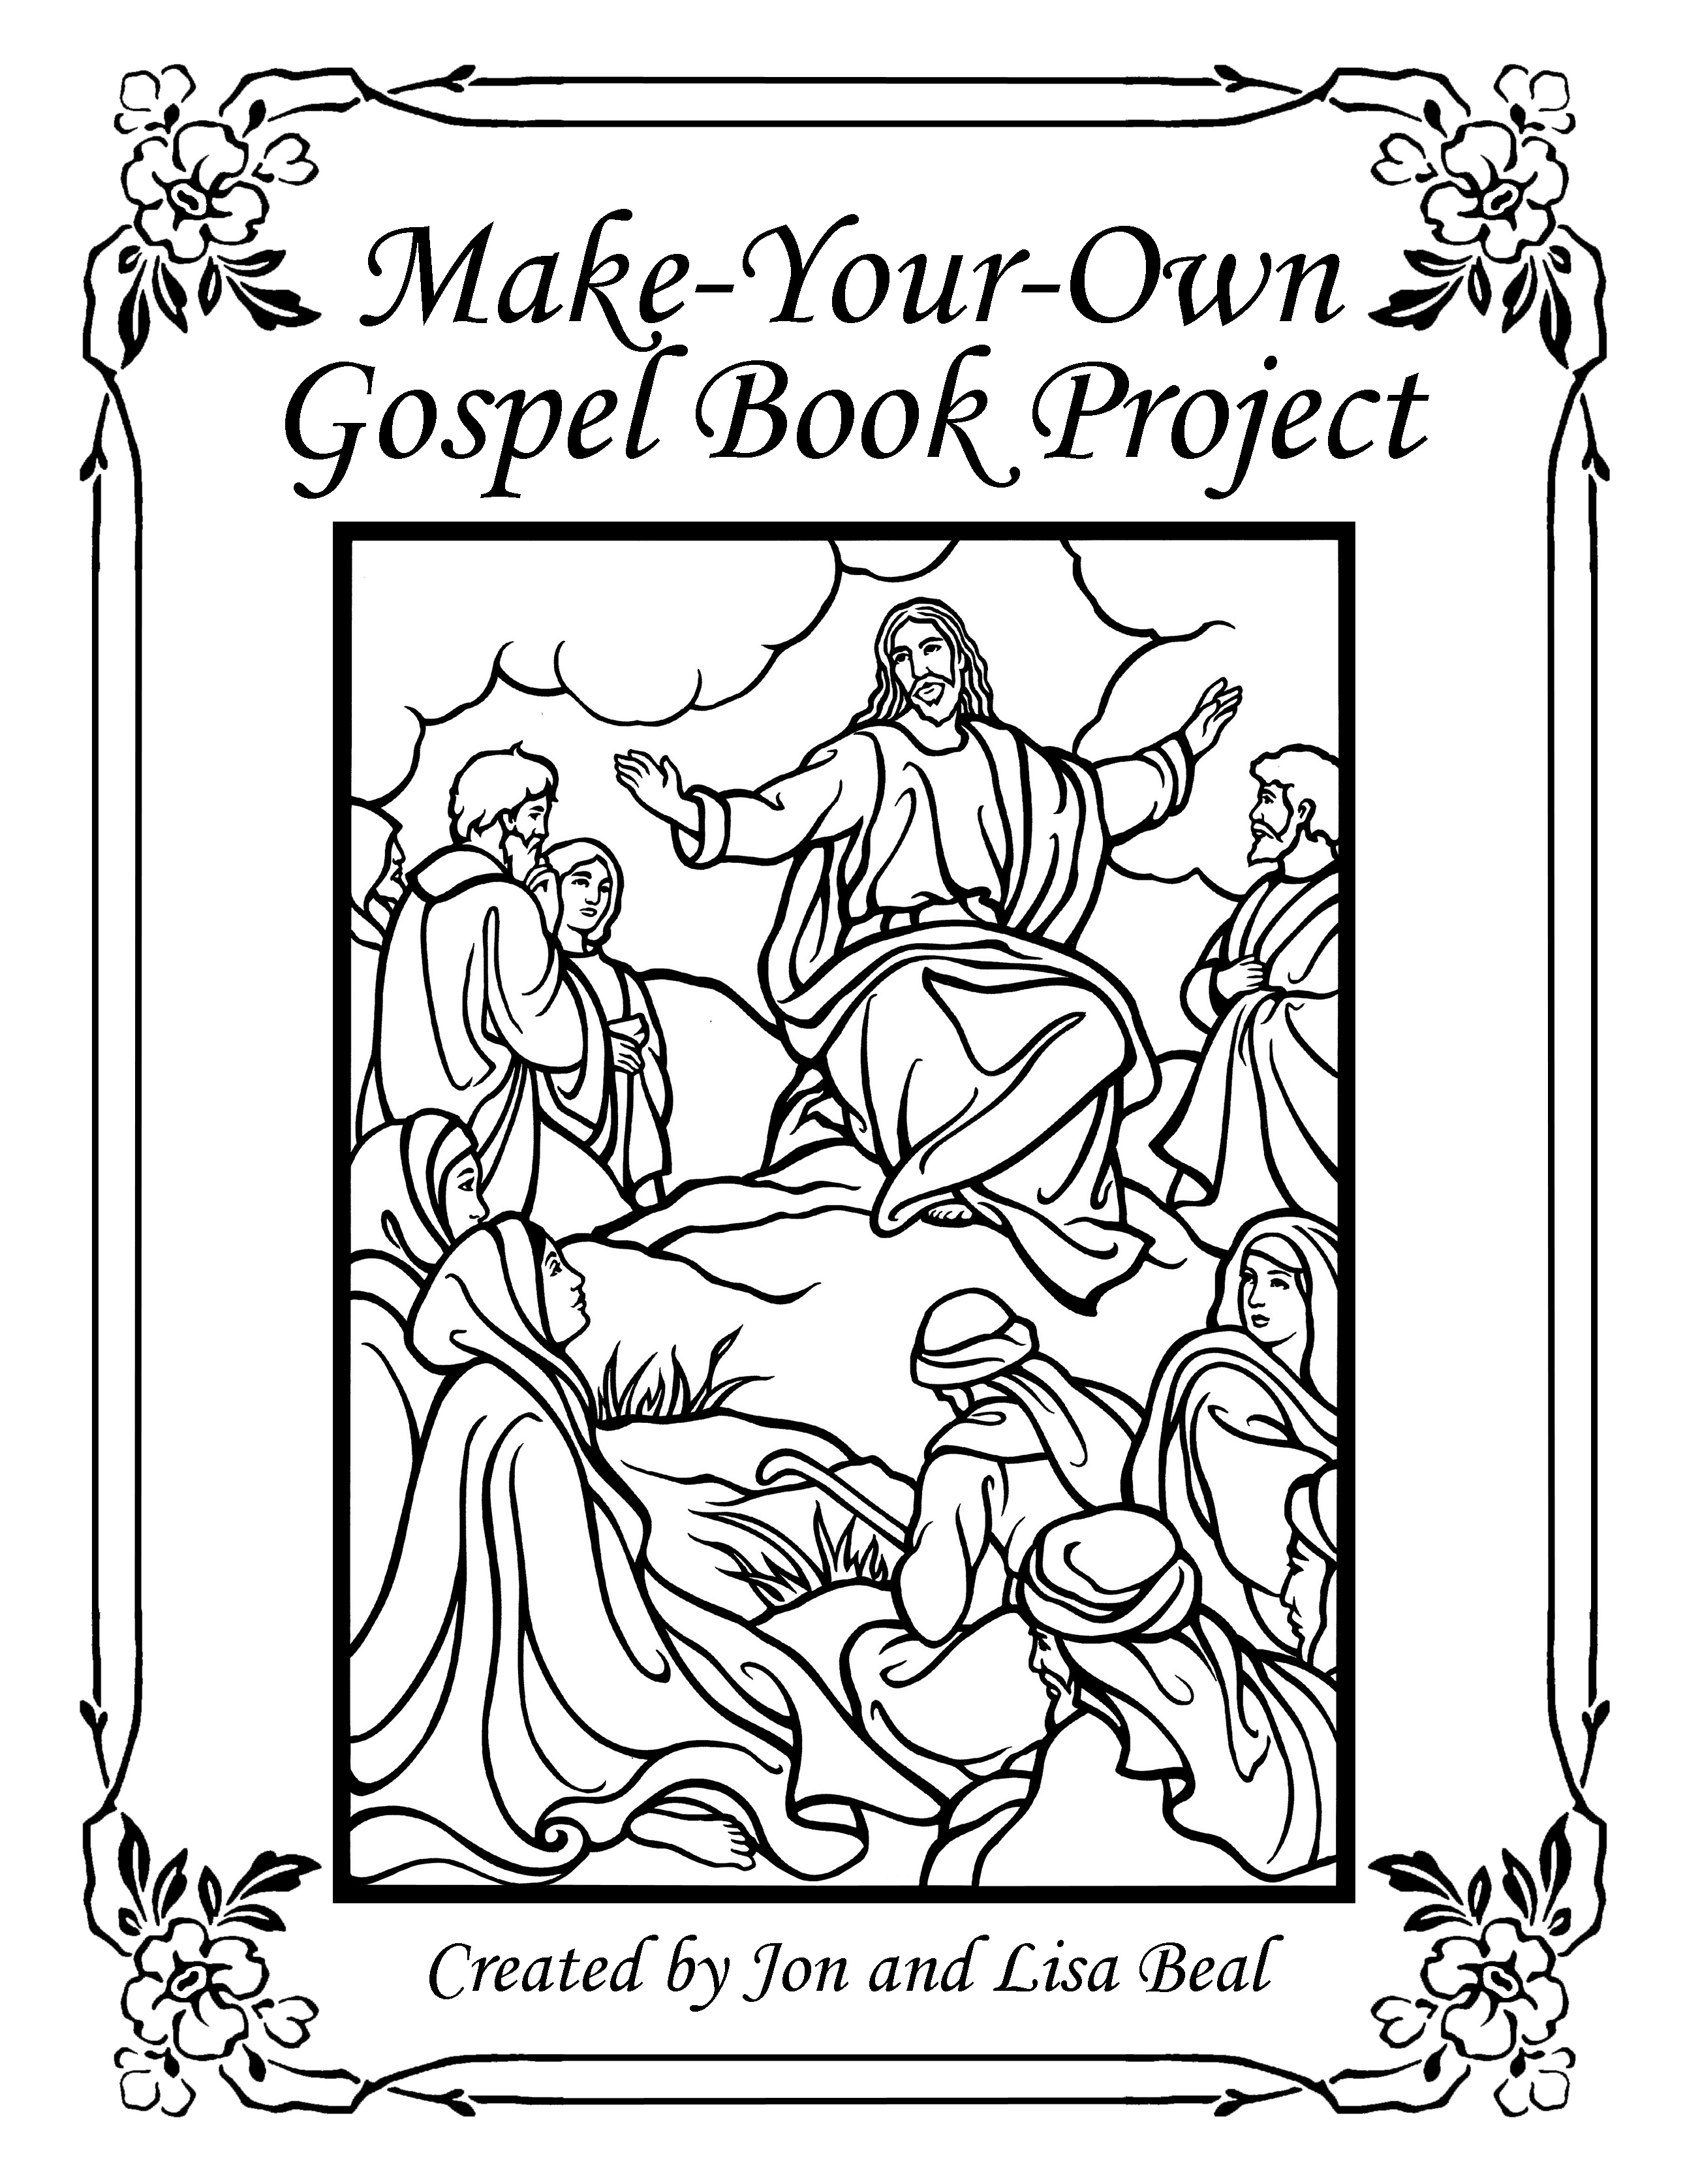 Make-Your-Own Gospel Book Project